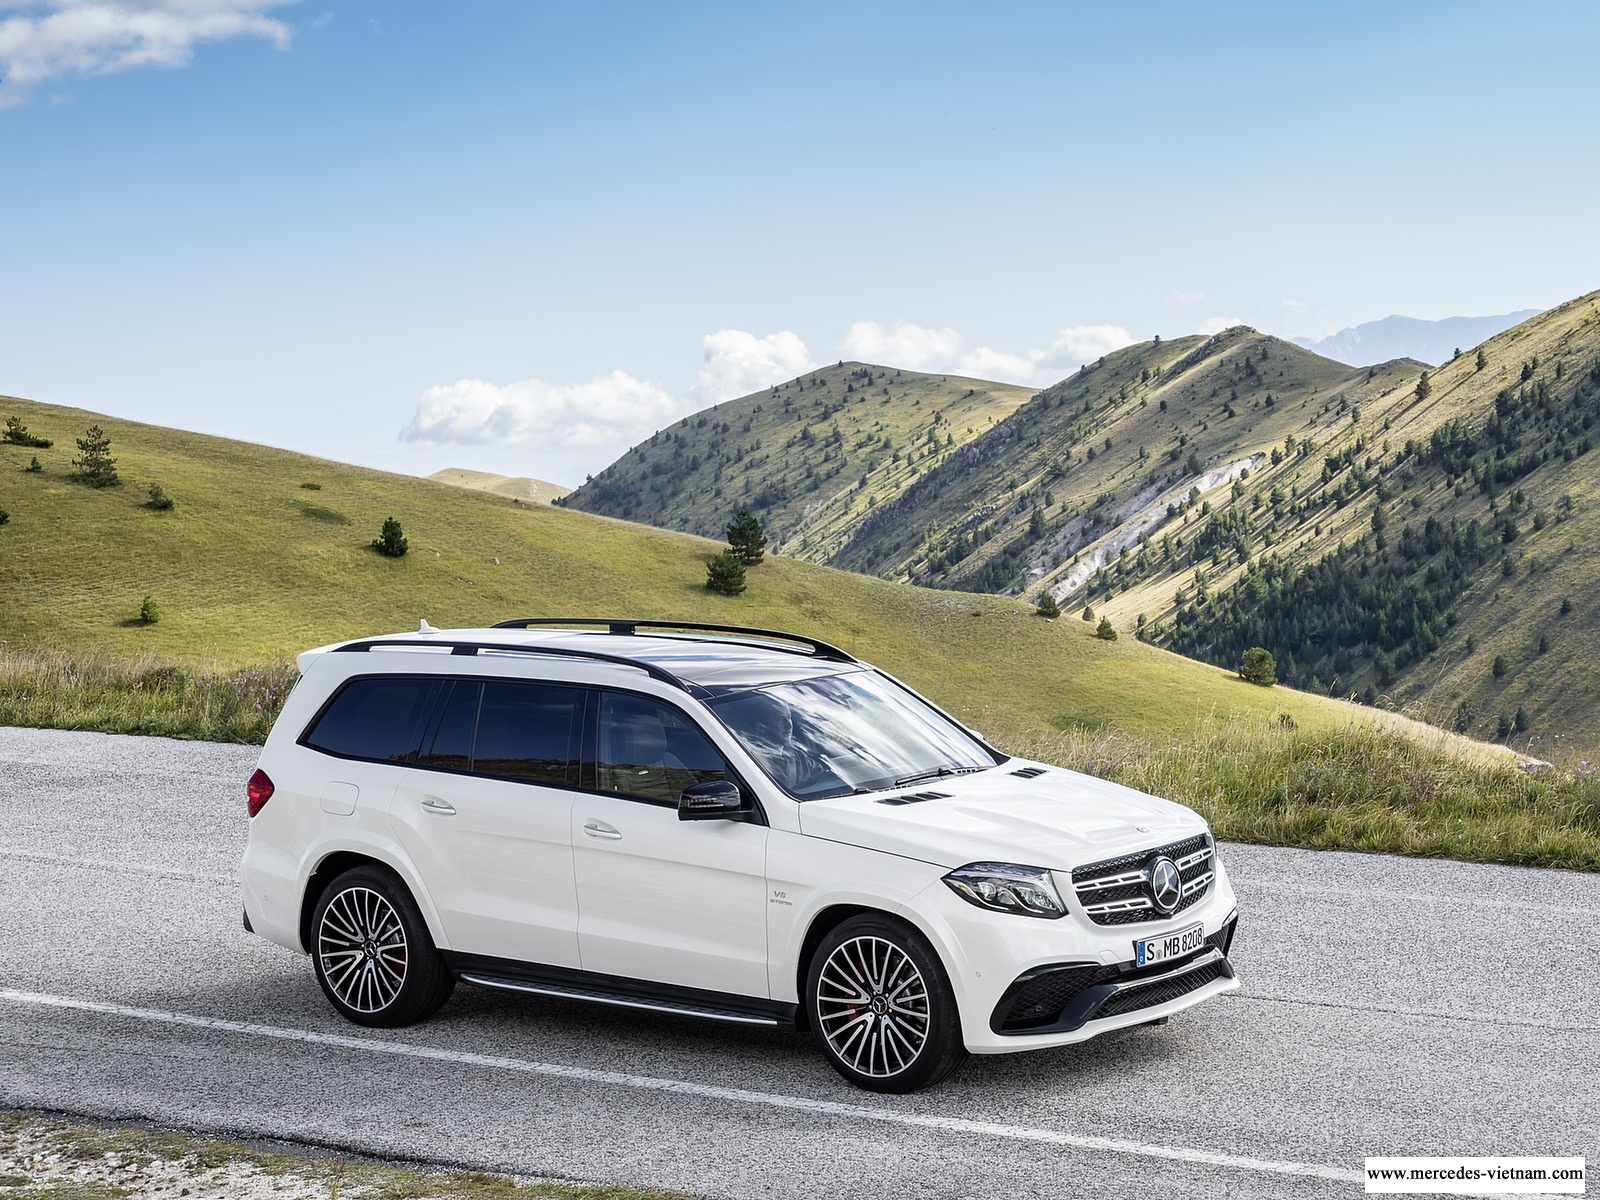 Mercedes-AMG GLS 63 4Matic 2018 2019 ngoai that noi that mercedes-vietnam (1)